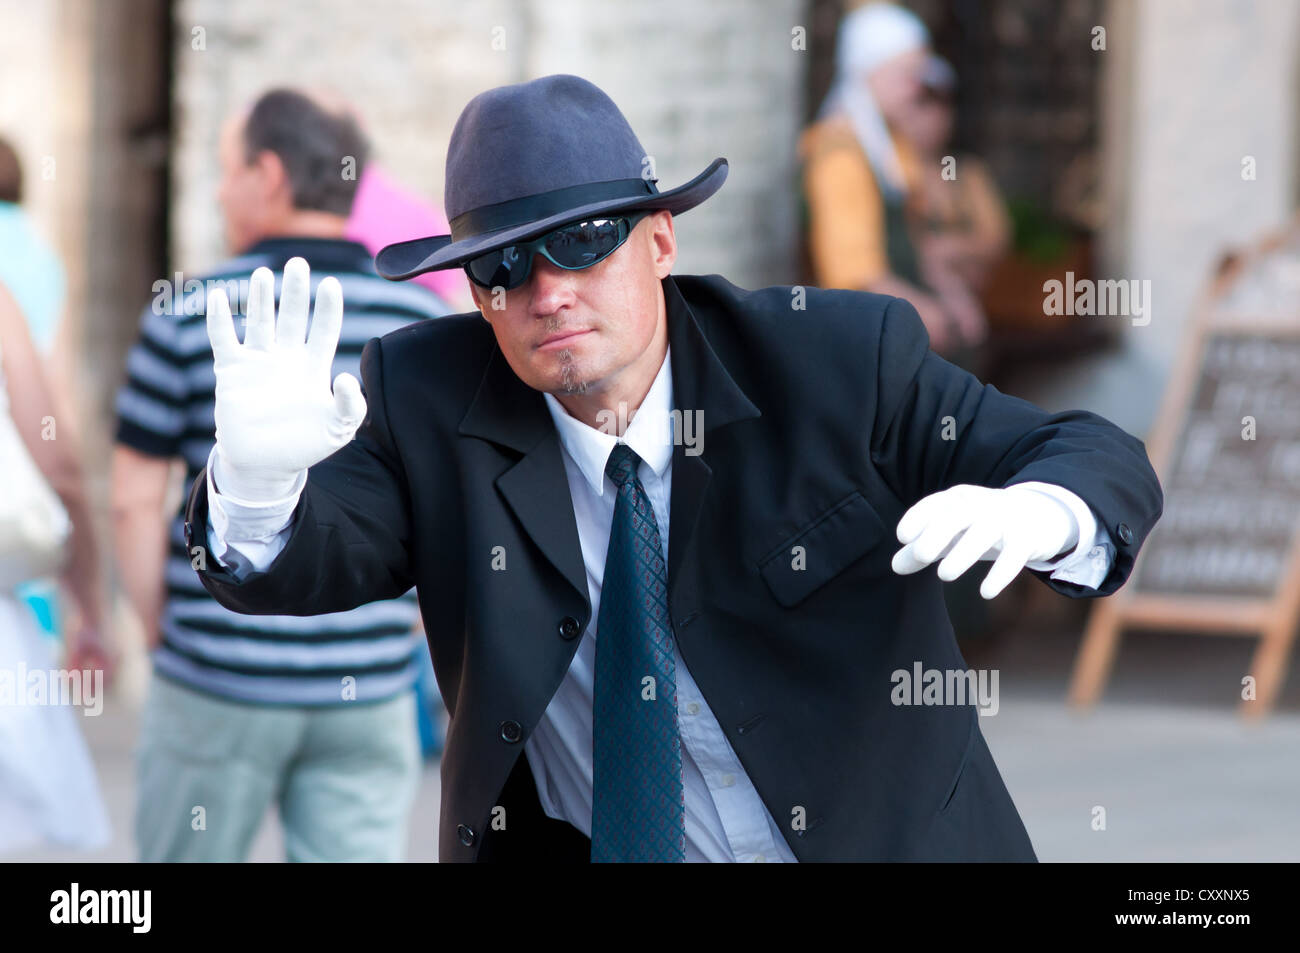 Tallinn, Estonia - July 10, 2010: Street artist with trendy suit performing as a 'Special Agent' living - Stock Image